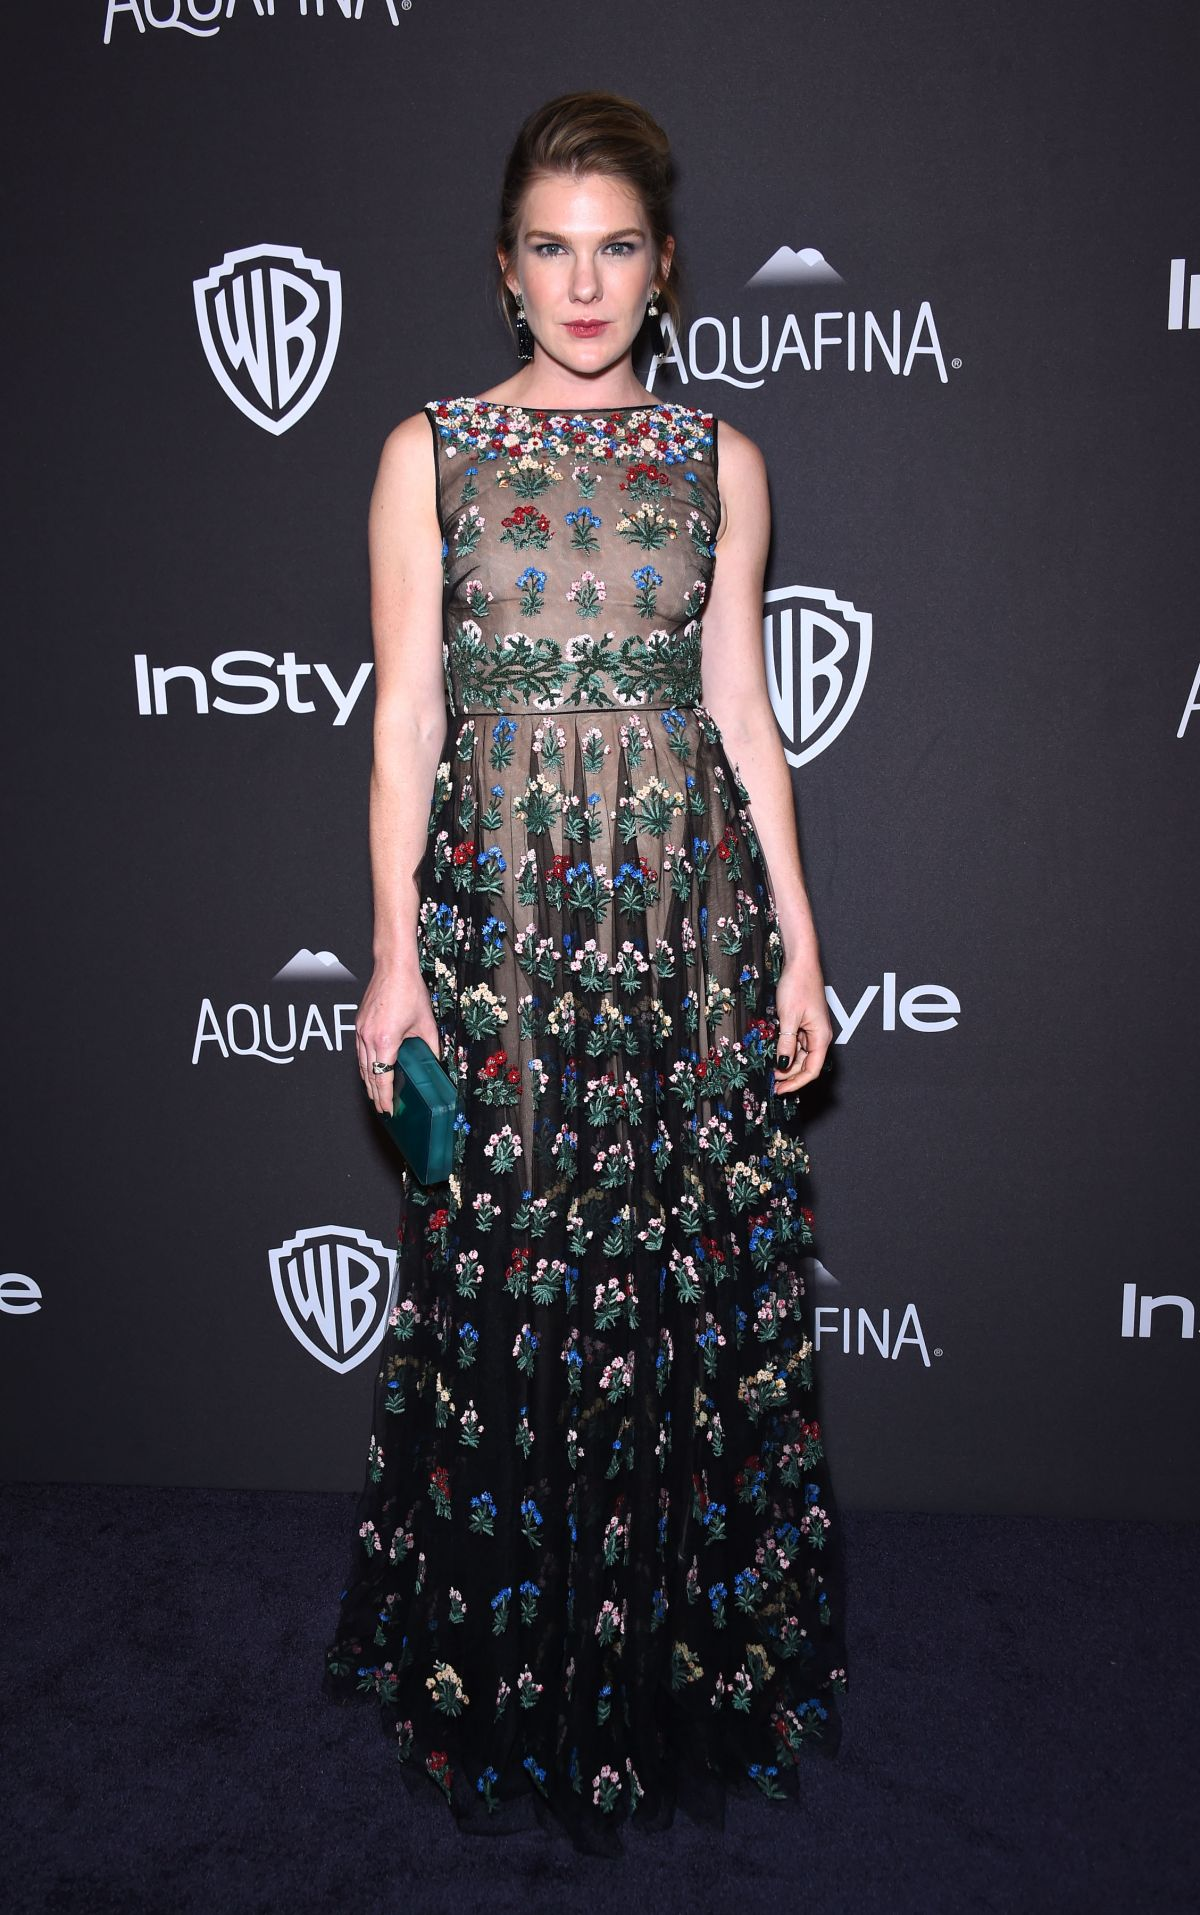 LILY RABE at Instyle and Warner Bros. 2016 Golden Globe Awards Post-party in Beverly Hills 01/10/2016